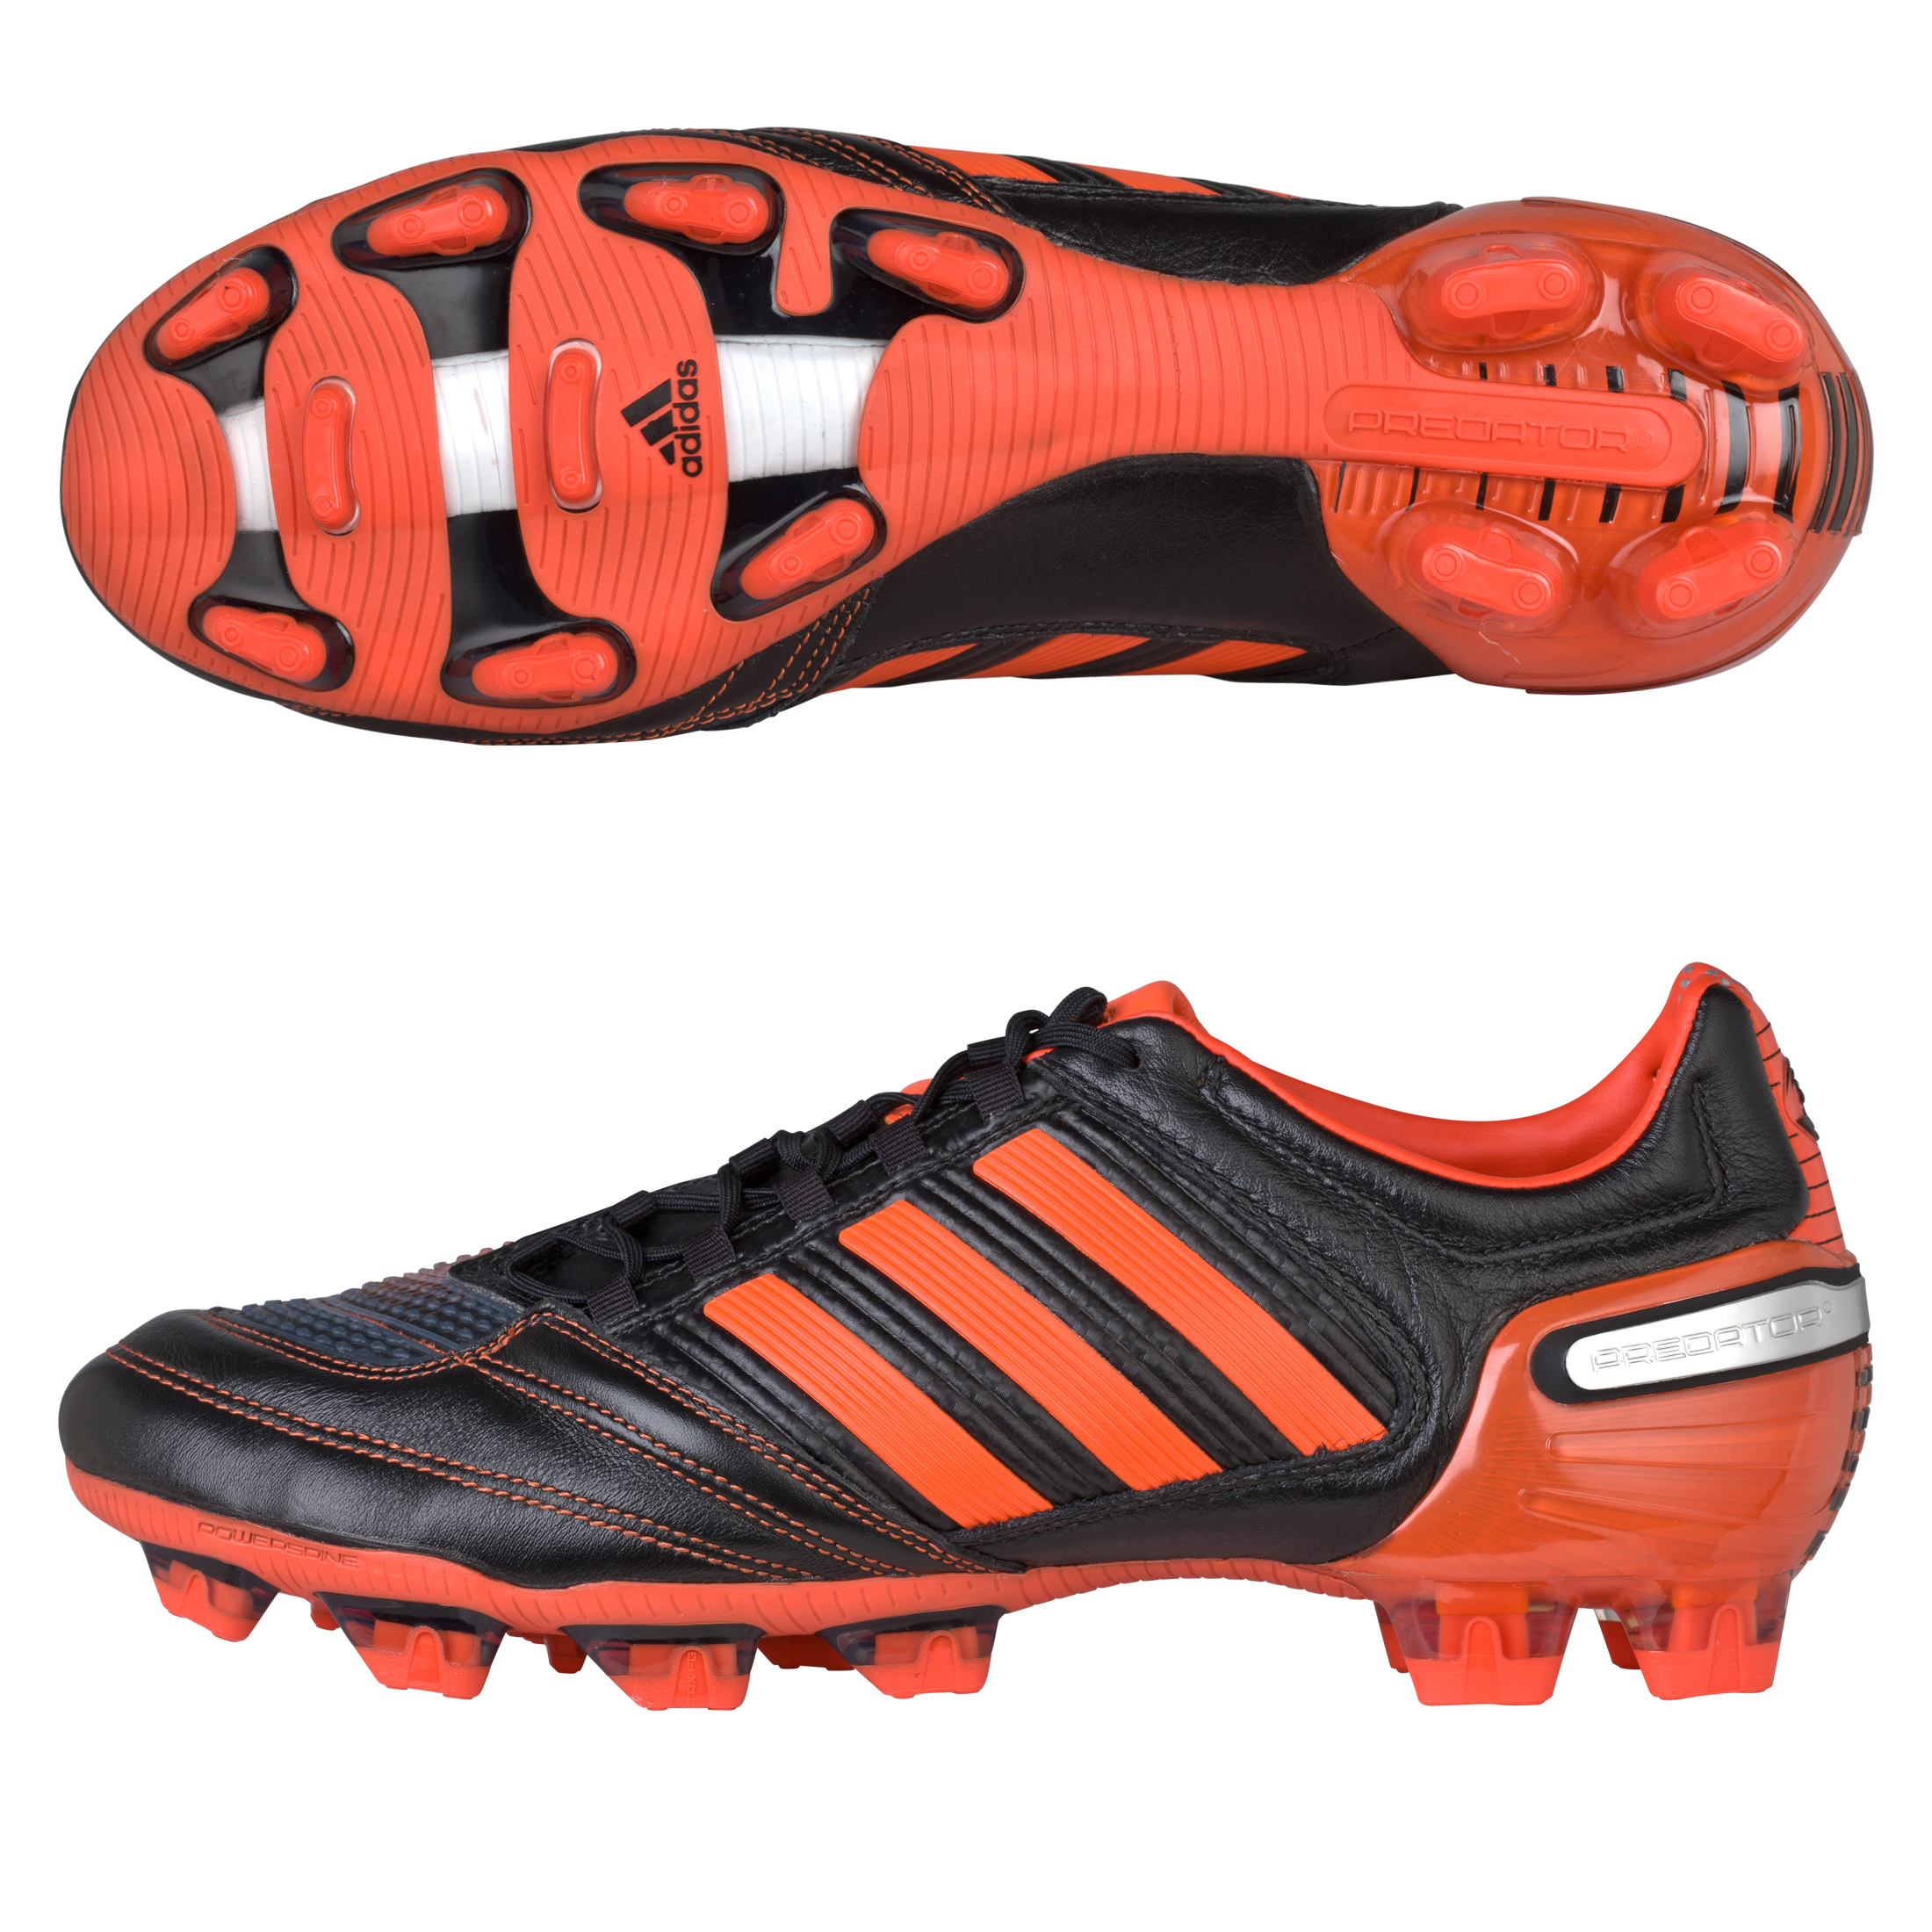 adidas Predator RX TRX Firm Ground Leather Rugby Boots - Black 1 / Running White / High Energy S12